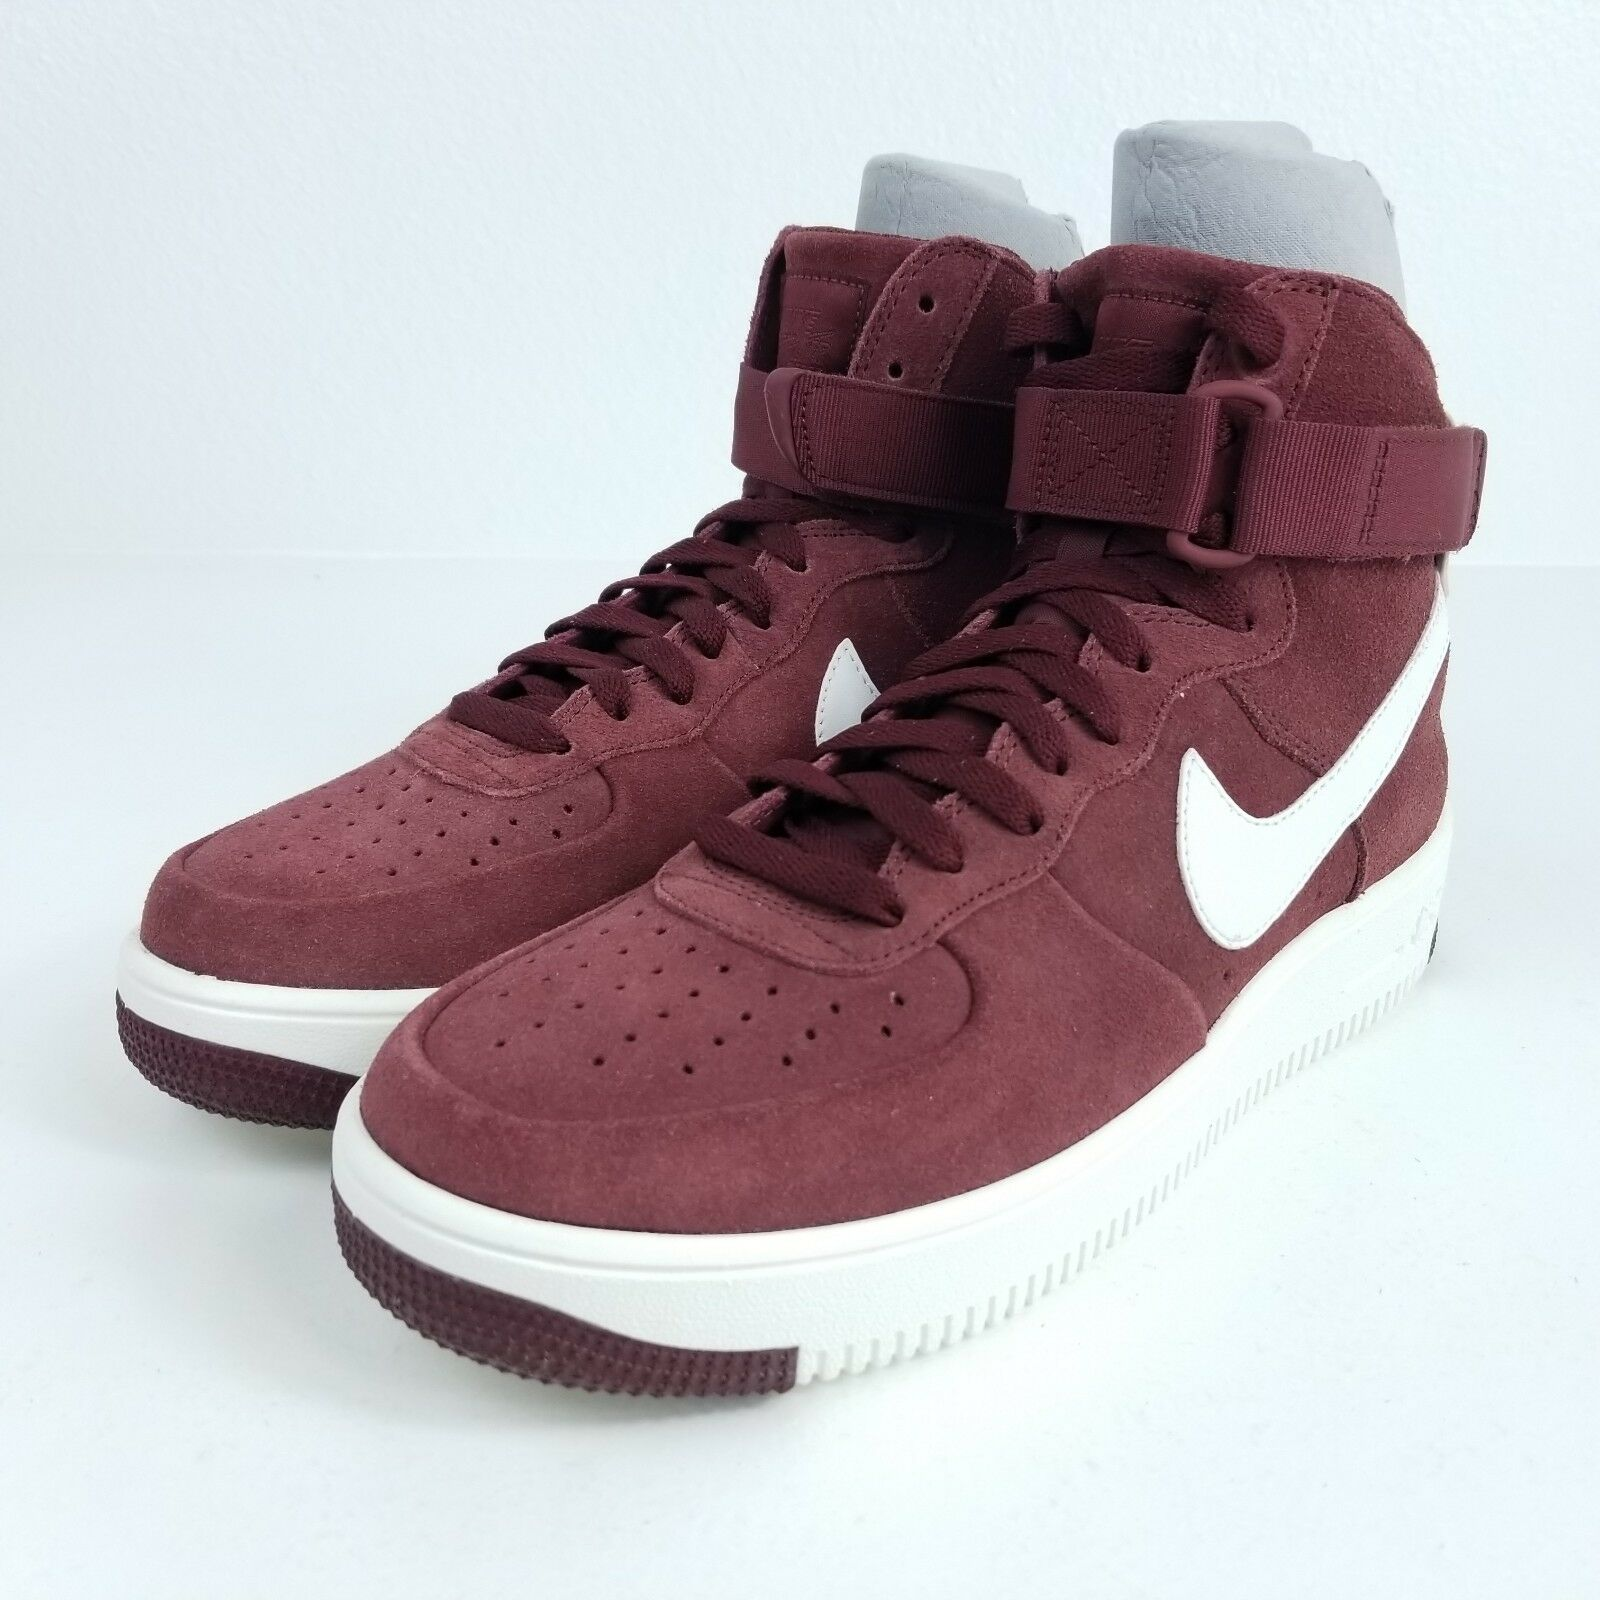 nike air force 1 ultraforce schuhe hi mens sz 11,5 schuhe ultraforce dunkle team red 880854 600 2f3b9a